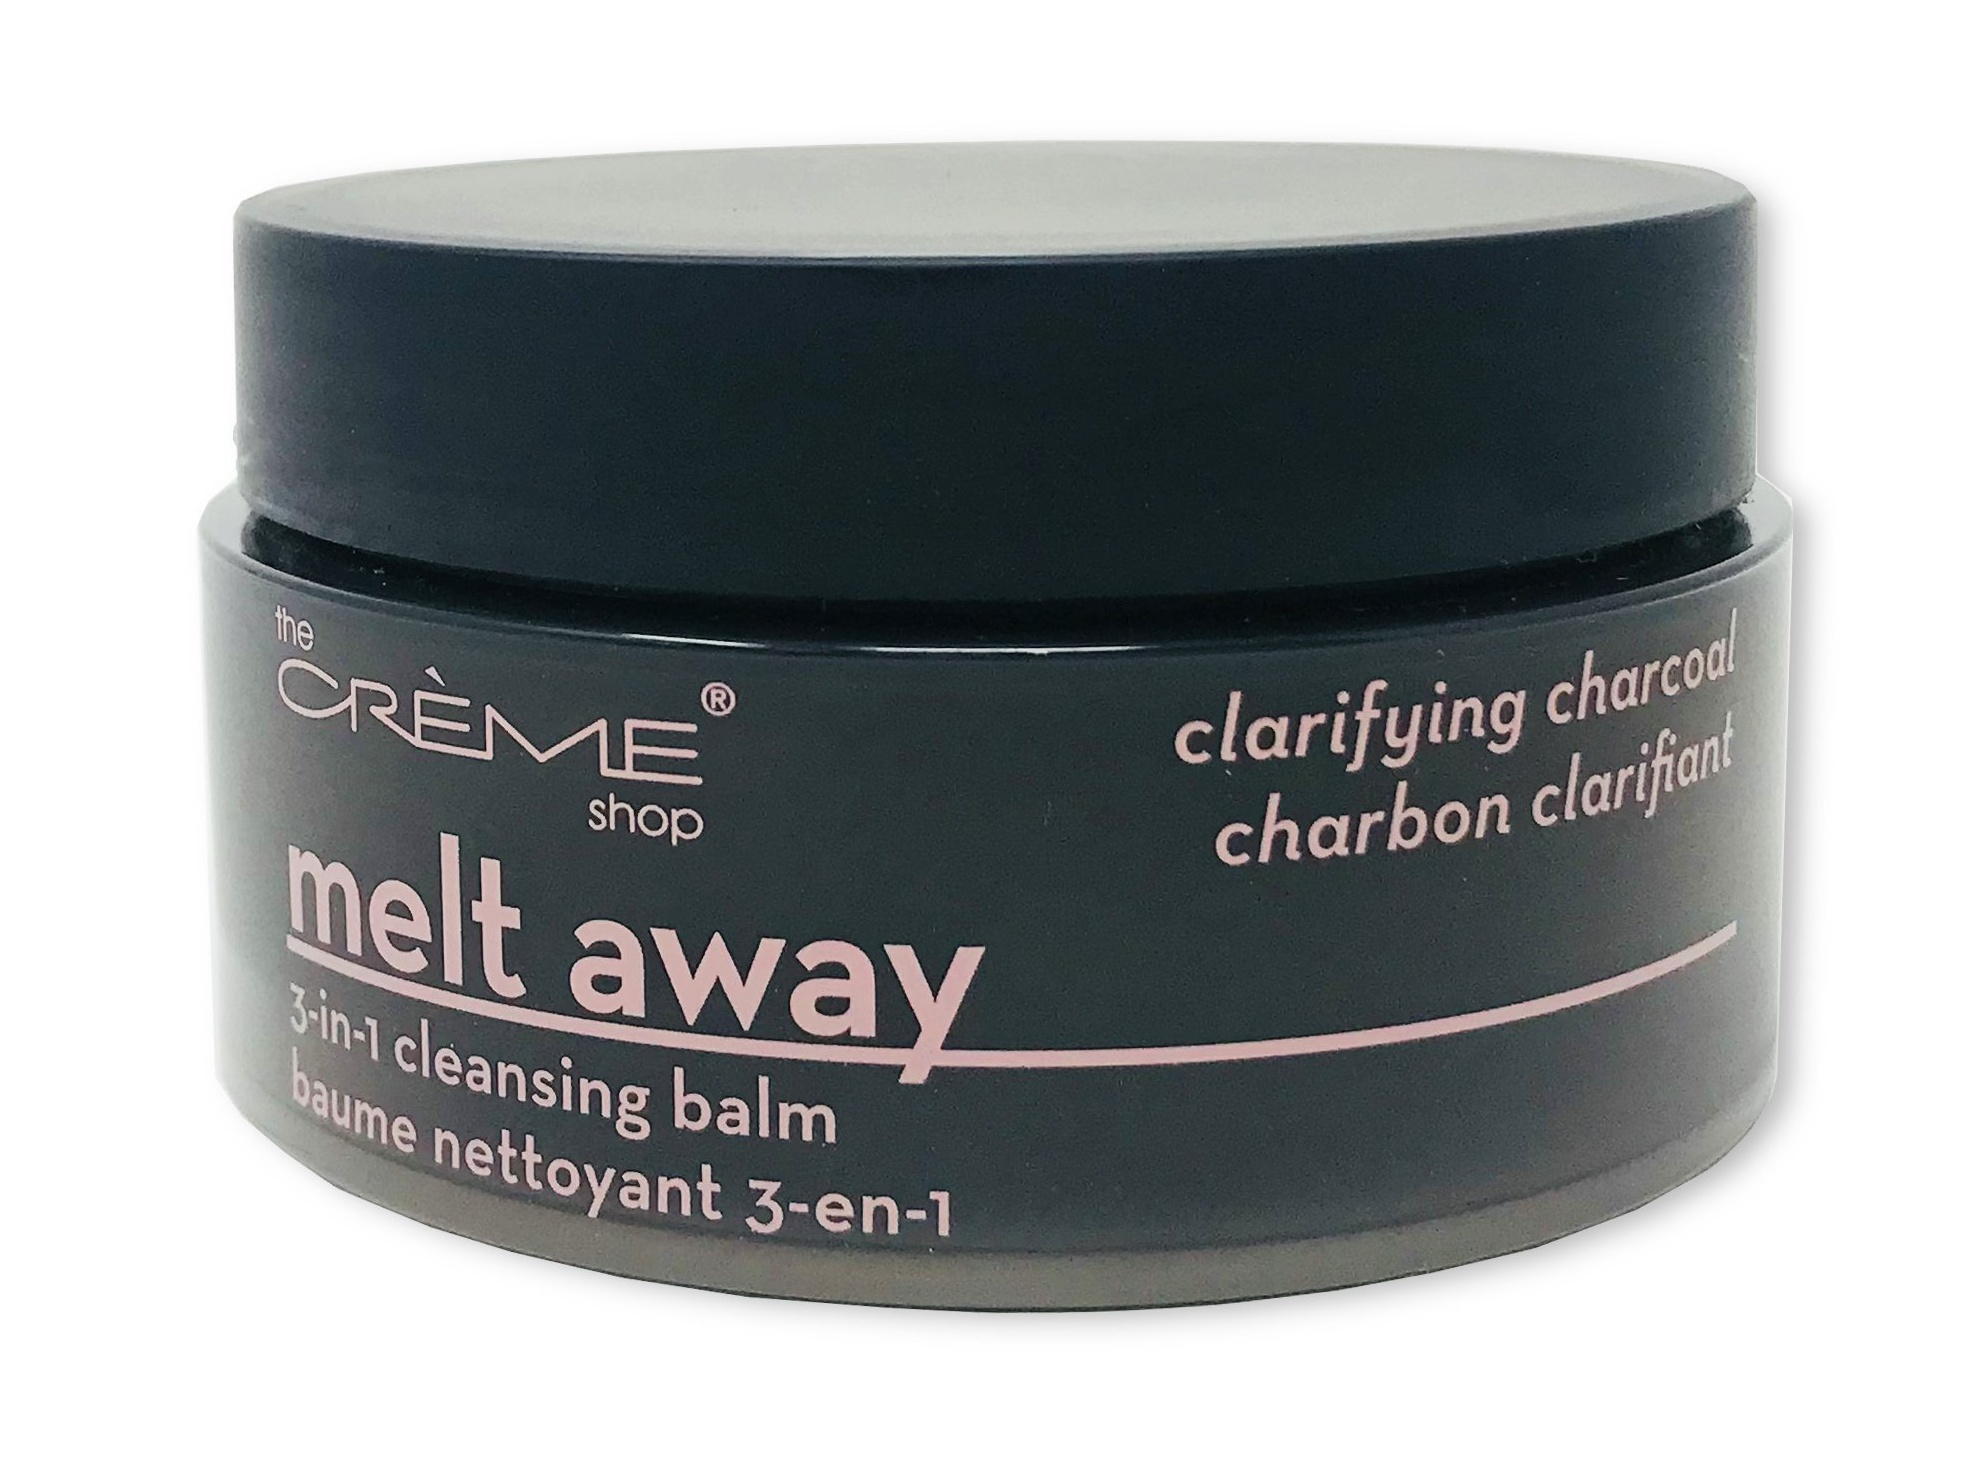 The Creme Shop Melt Away 3-In-1 Cleansing Balm Clarifying Charcoal